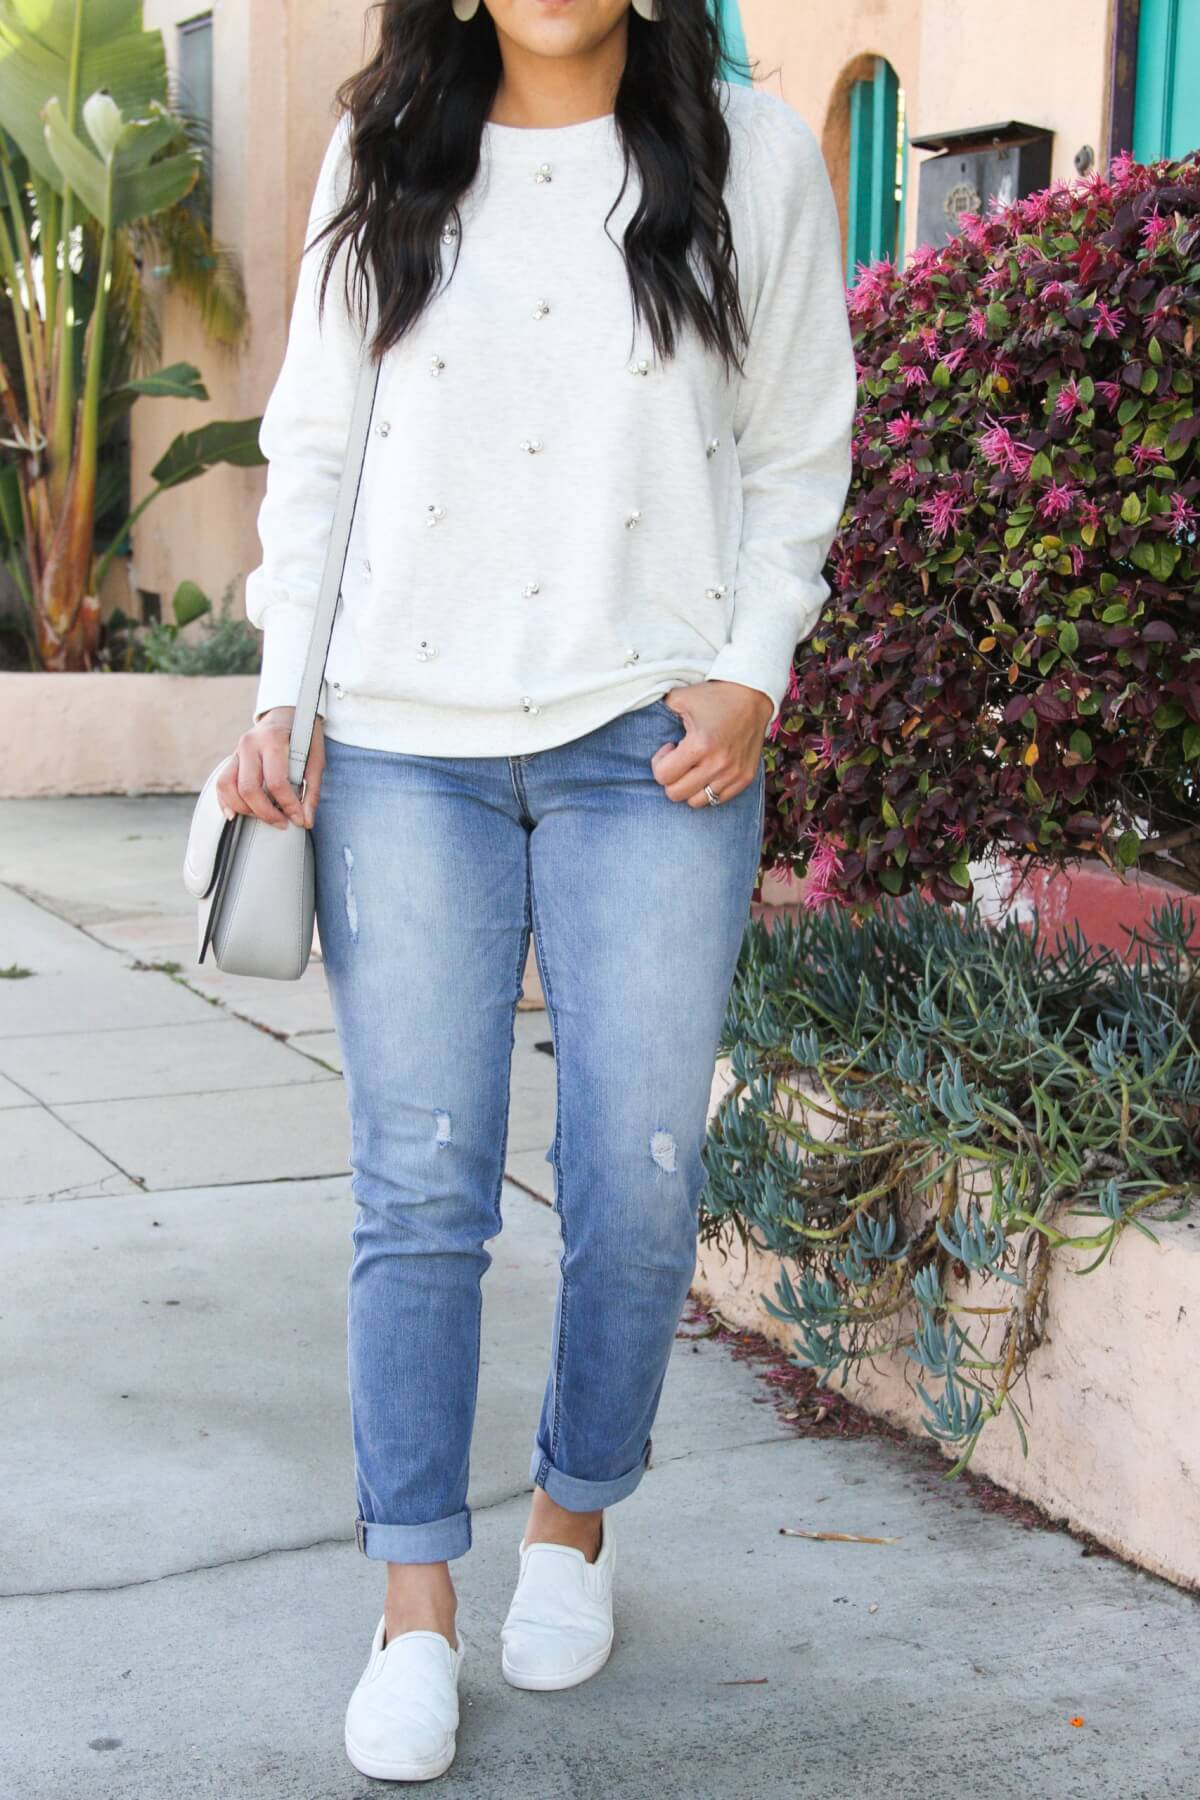 casual spring outfit: embellished sweatshirt, girlfriend jeans, white slip-on sneakers, gray purse, white earrings, close up